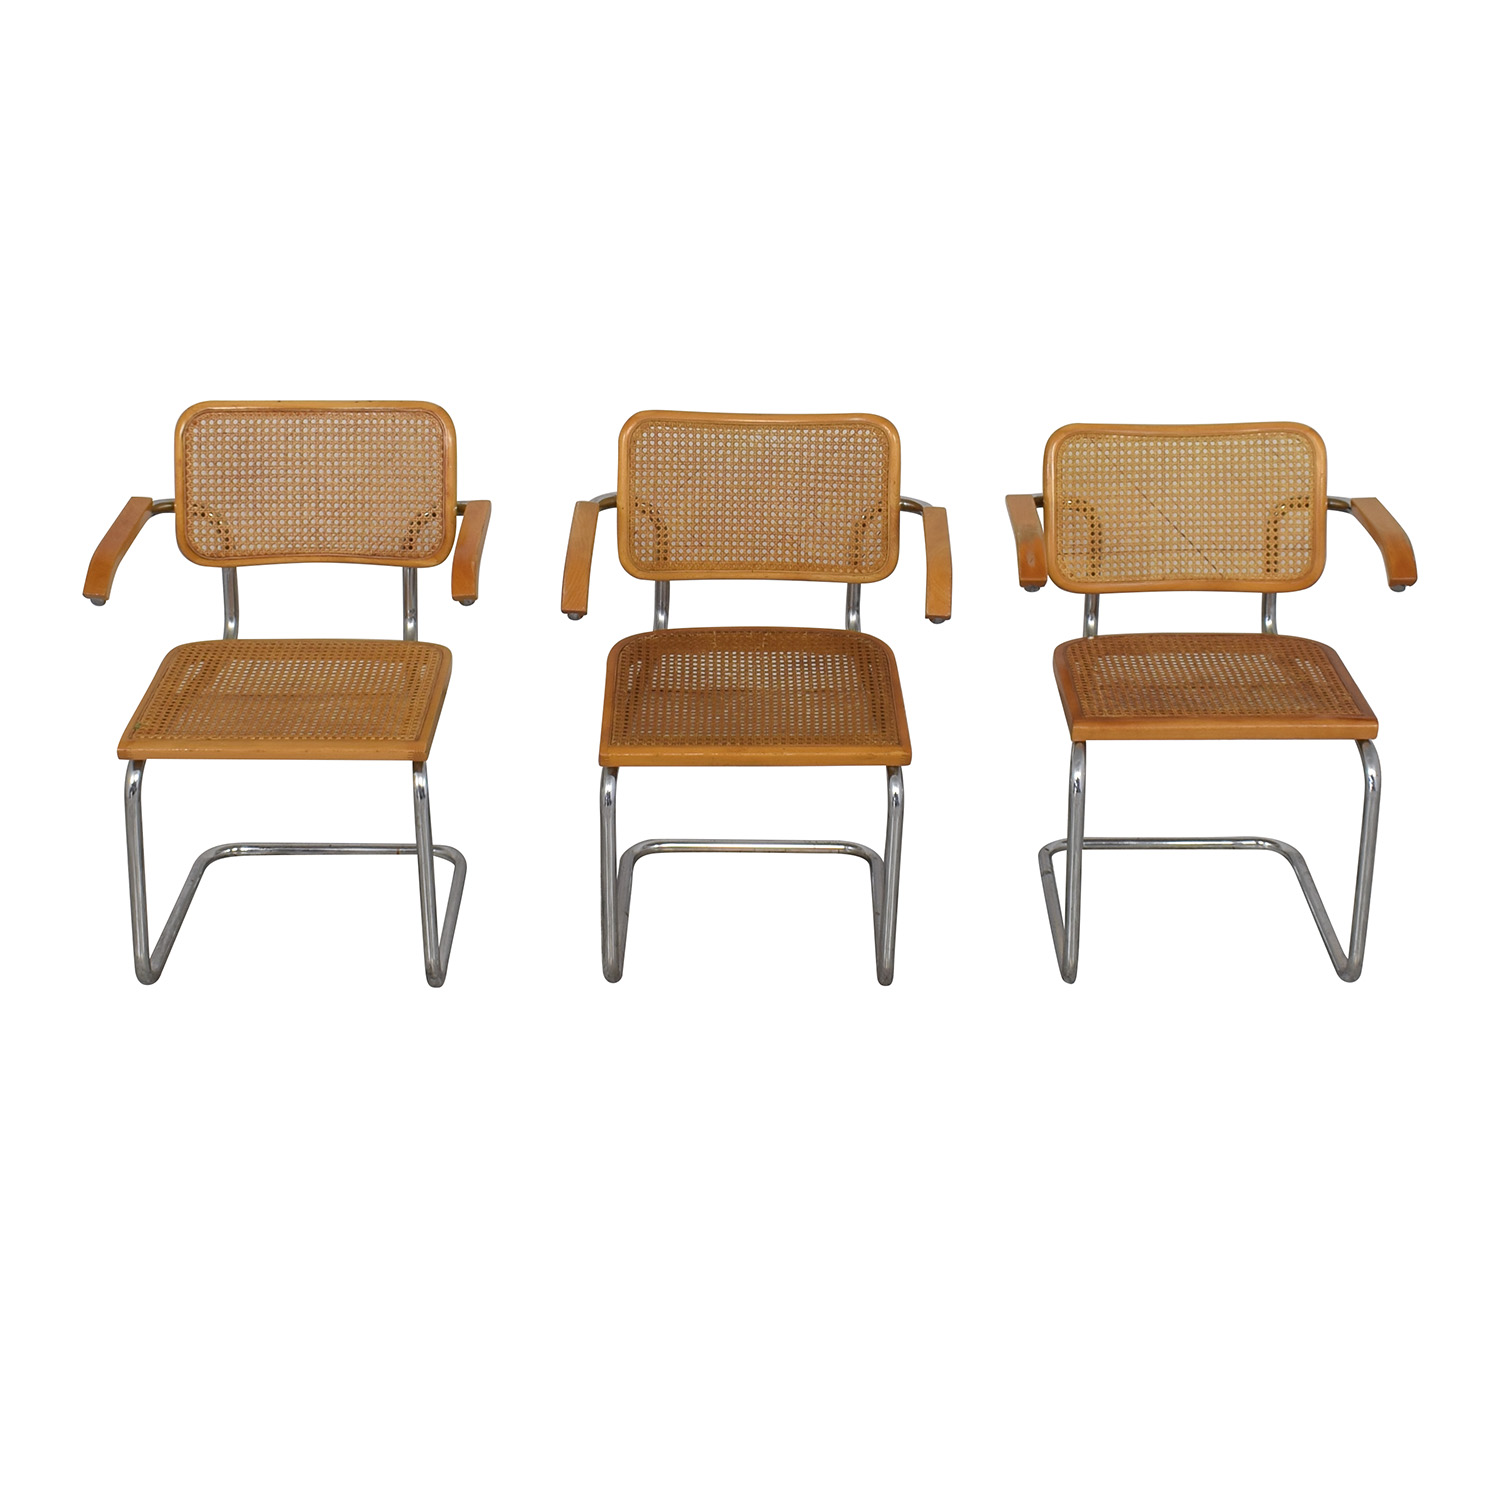 Scandinavian Designs Scandinavian Designs Bendt Dining Arm Chairs nj